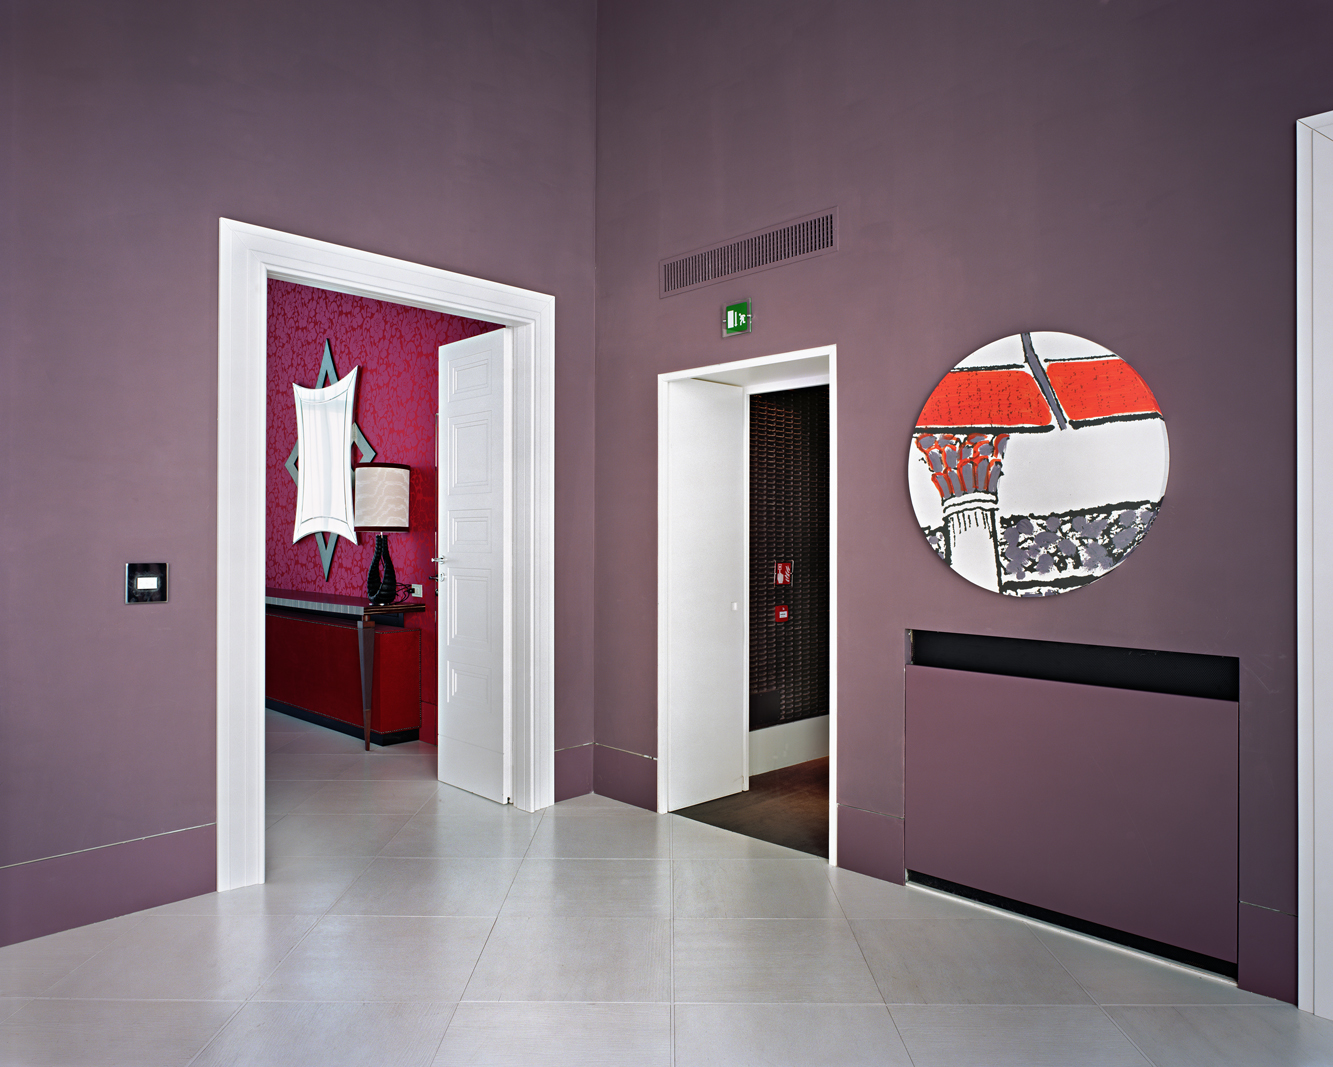 Lynne Cohen / Estate  - Untitled (Circle Mirror - Mauve Wall), 2011